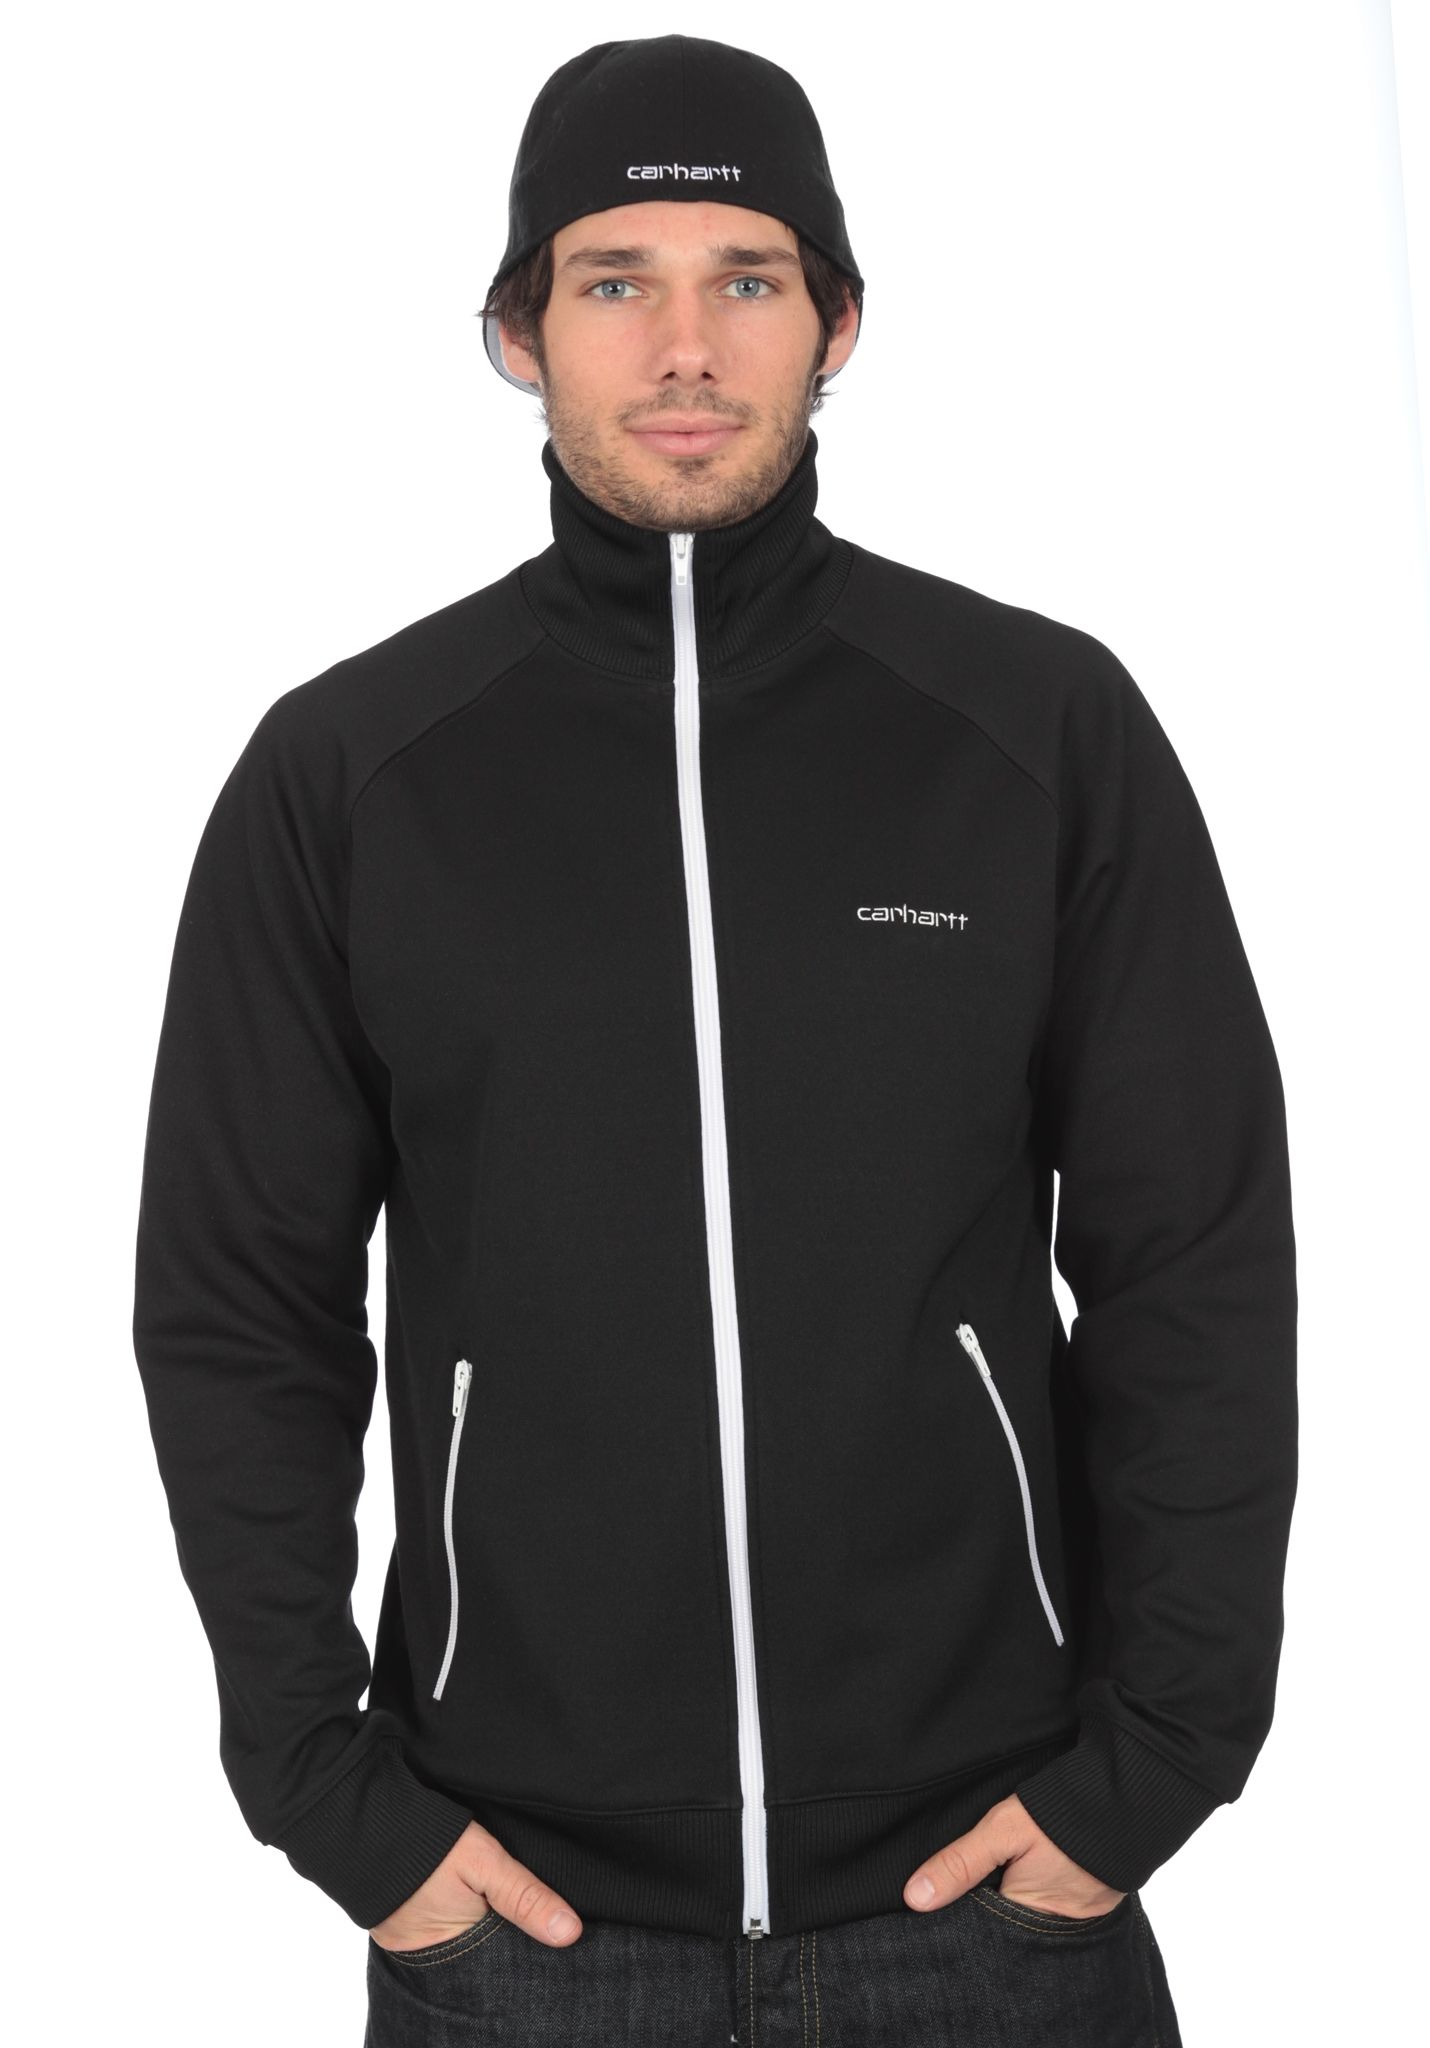 ac98232dc22e Carhartt WIP Gym Jacket - Sweatjacke für Herren - Schwarz - Planet Sports